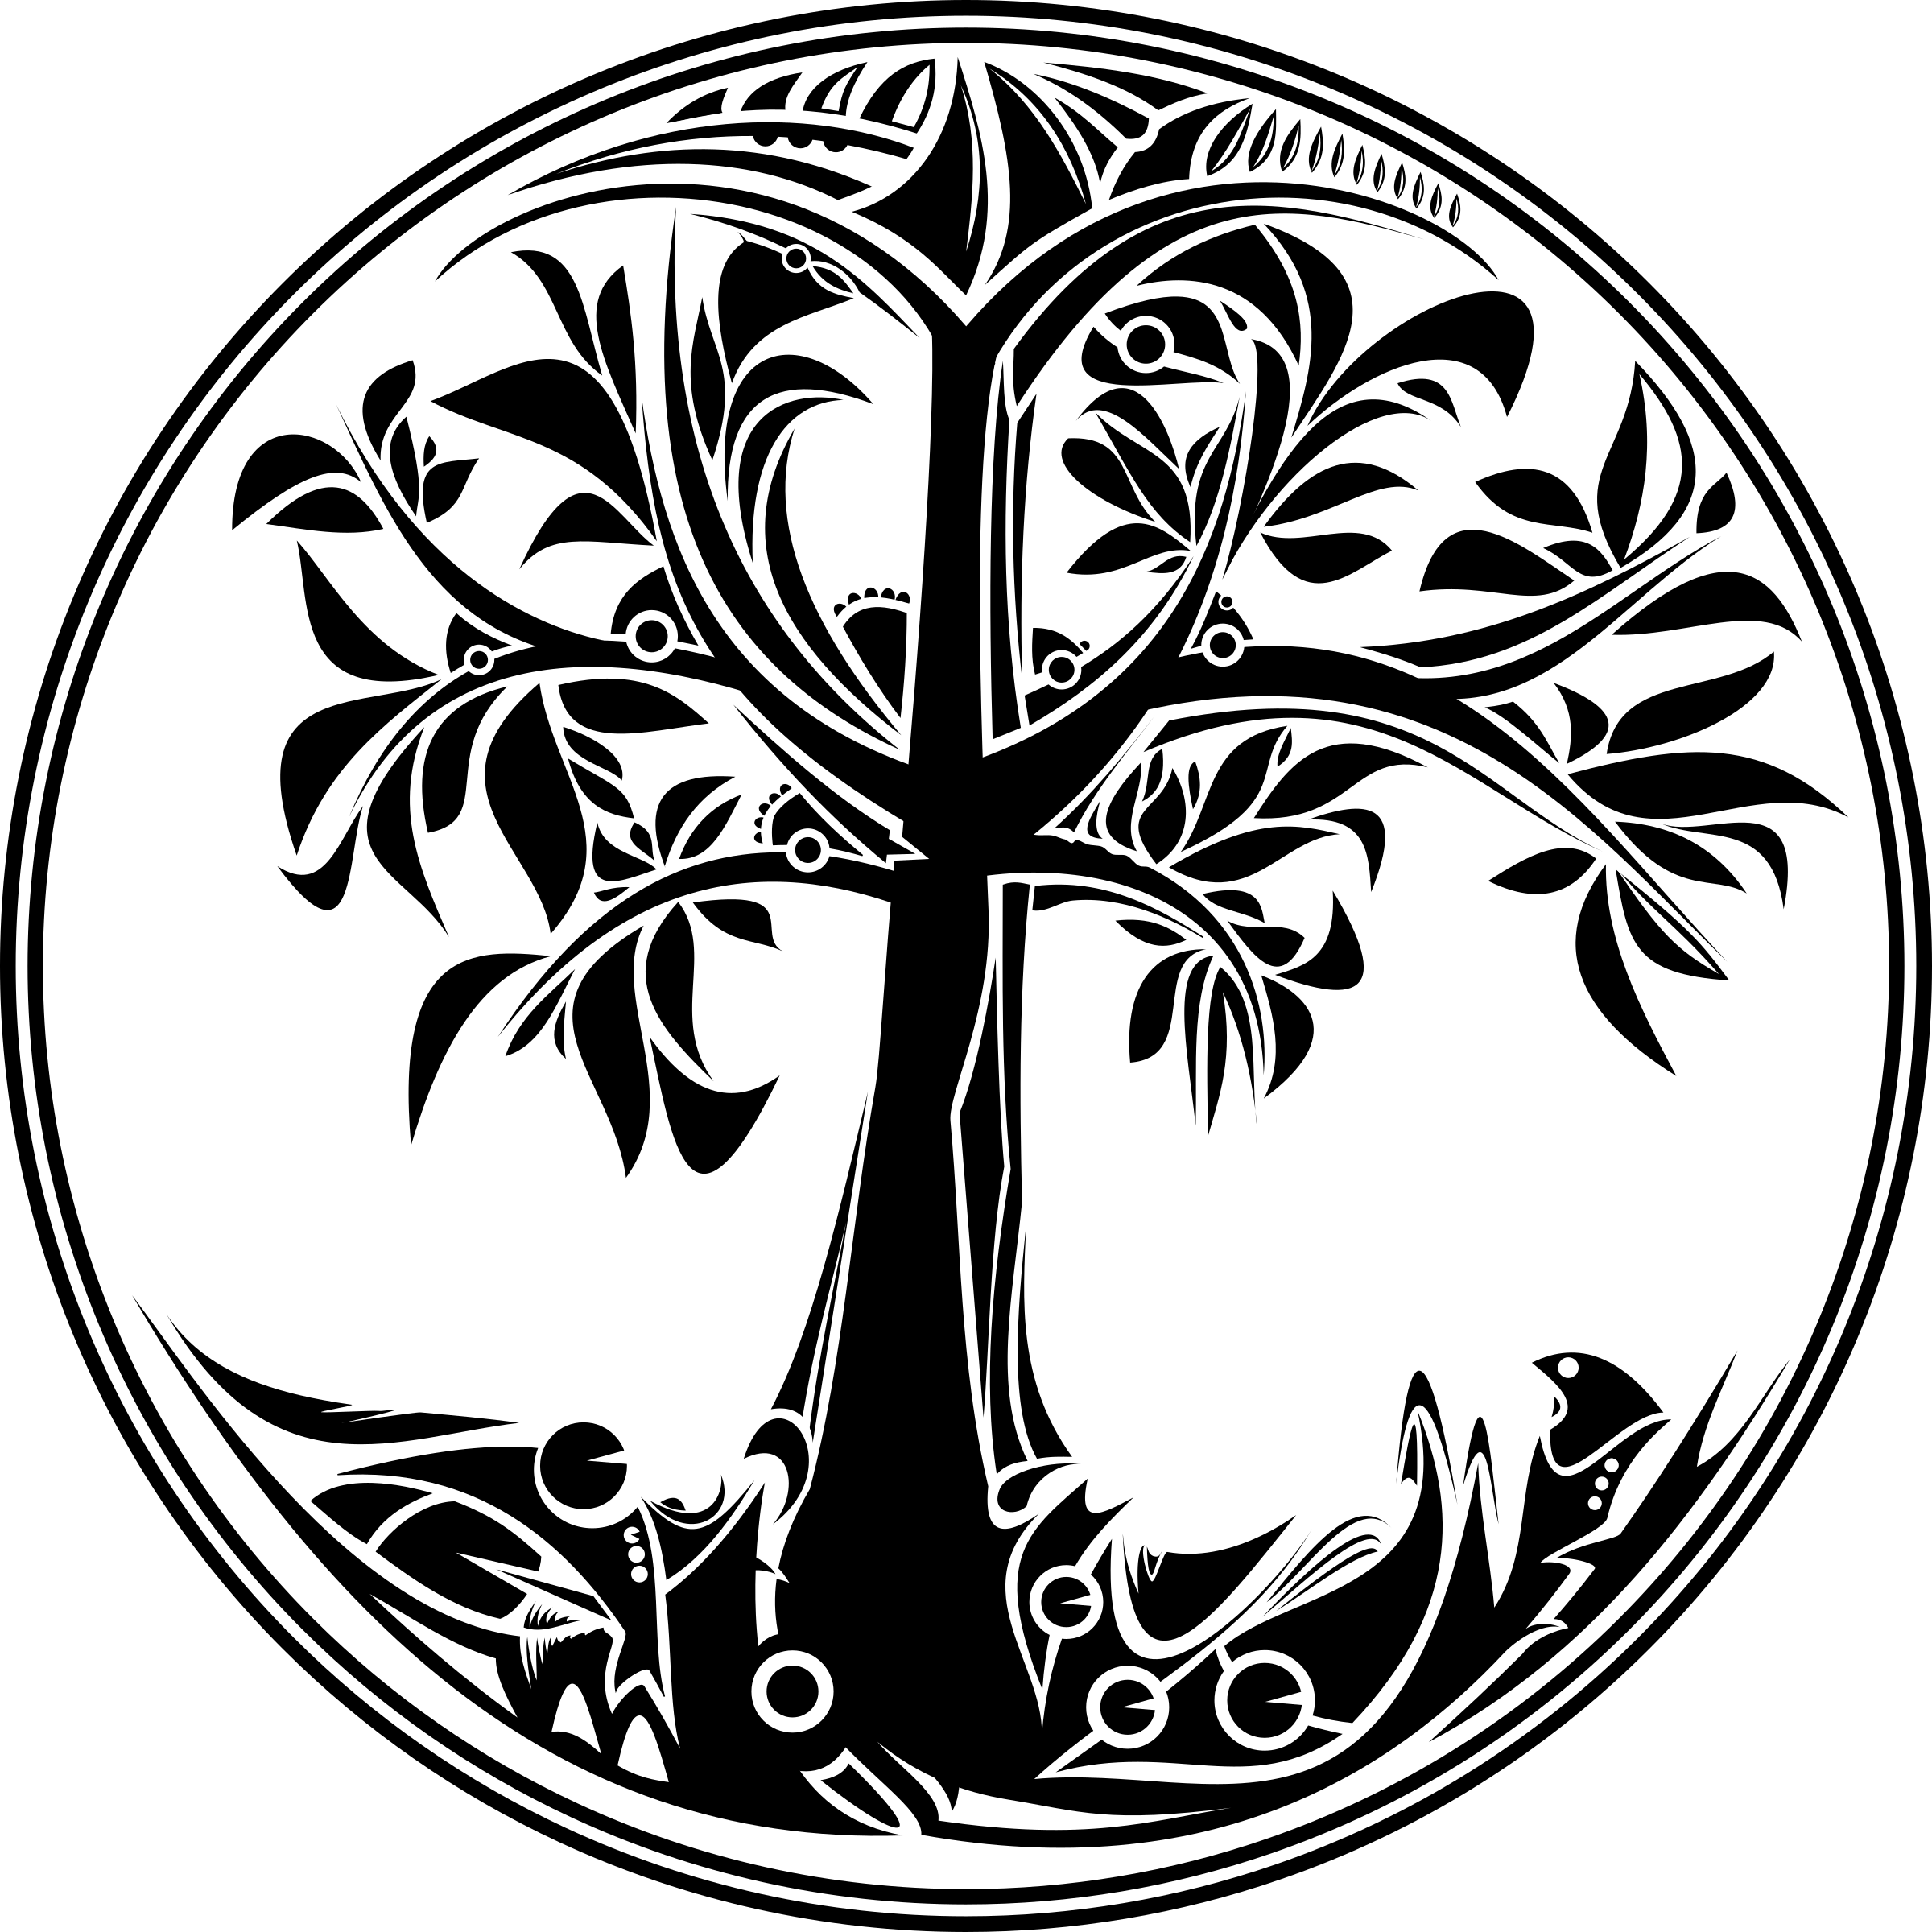 What Is The Tree Of Life Meaning Symbolism From Bible